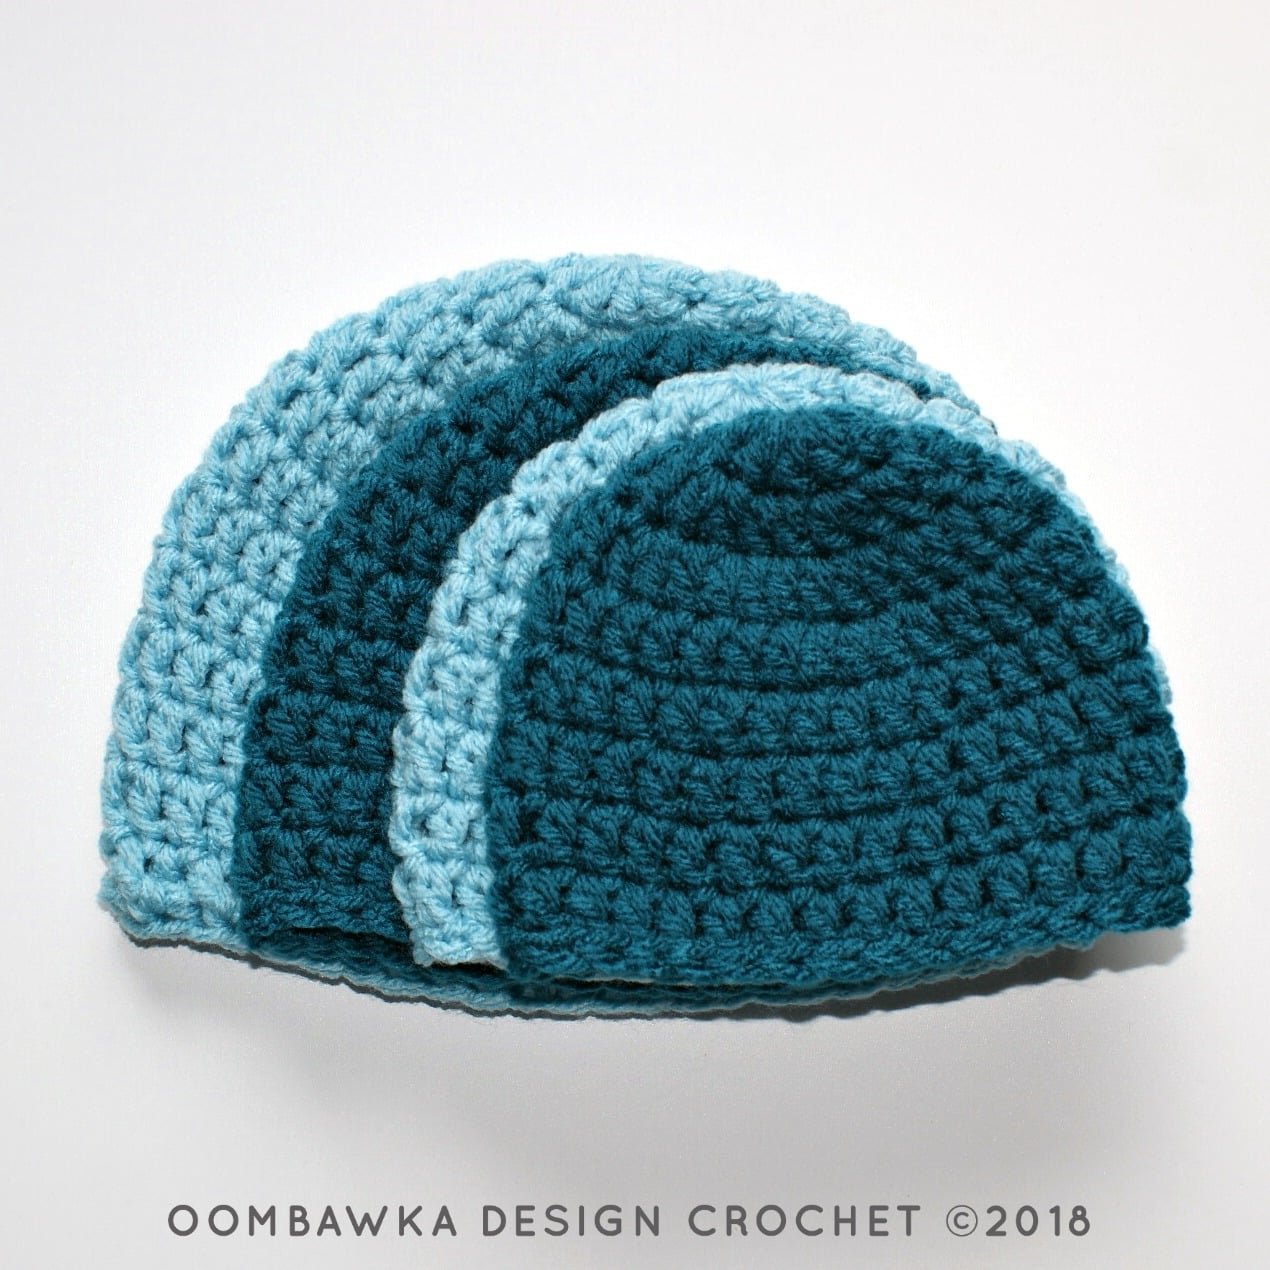 Simple Double Crochet Hat Pattern. • Oombawka Design Crochet 61110ceb43e